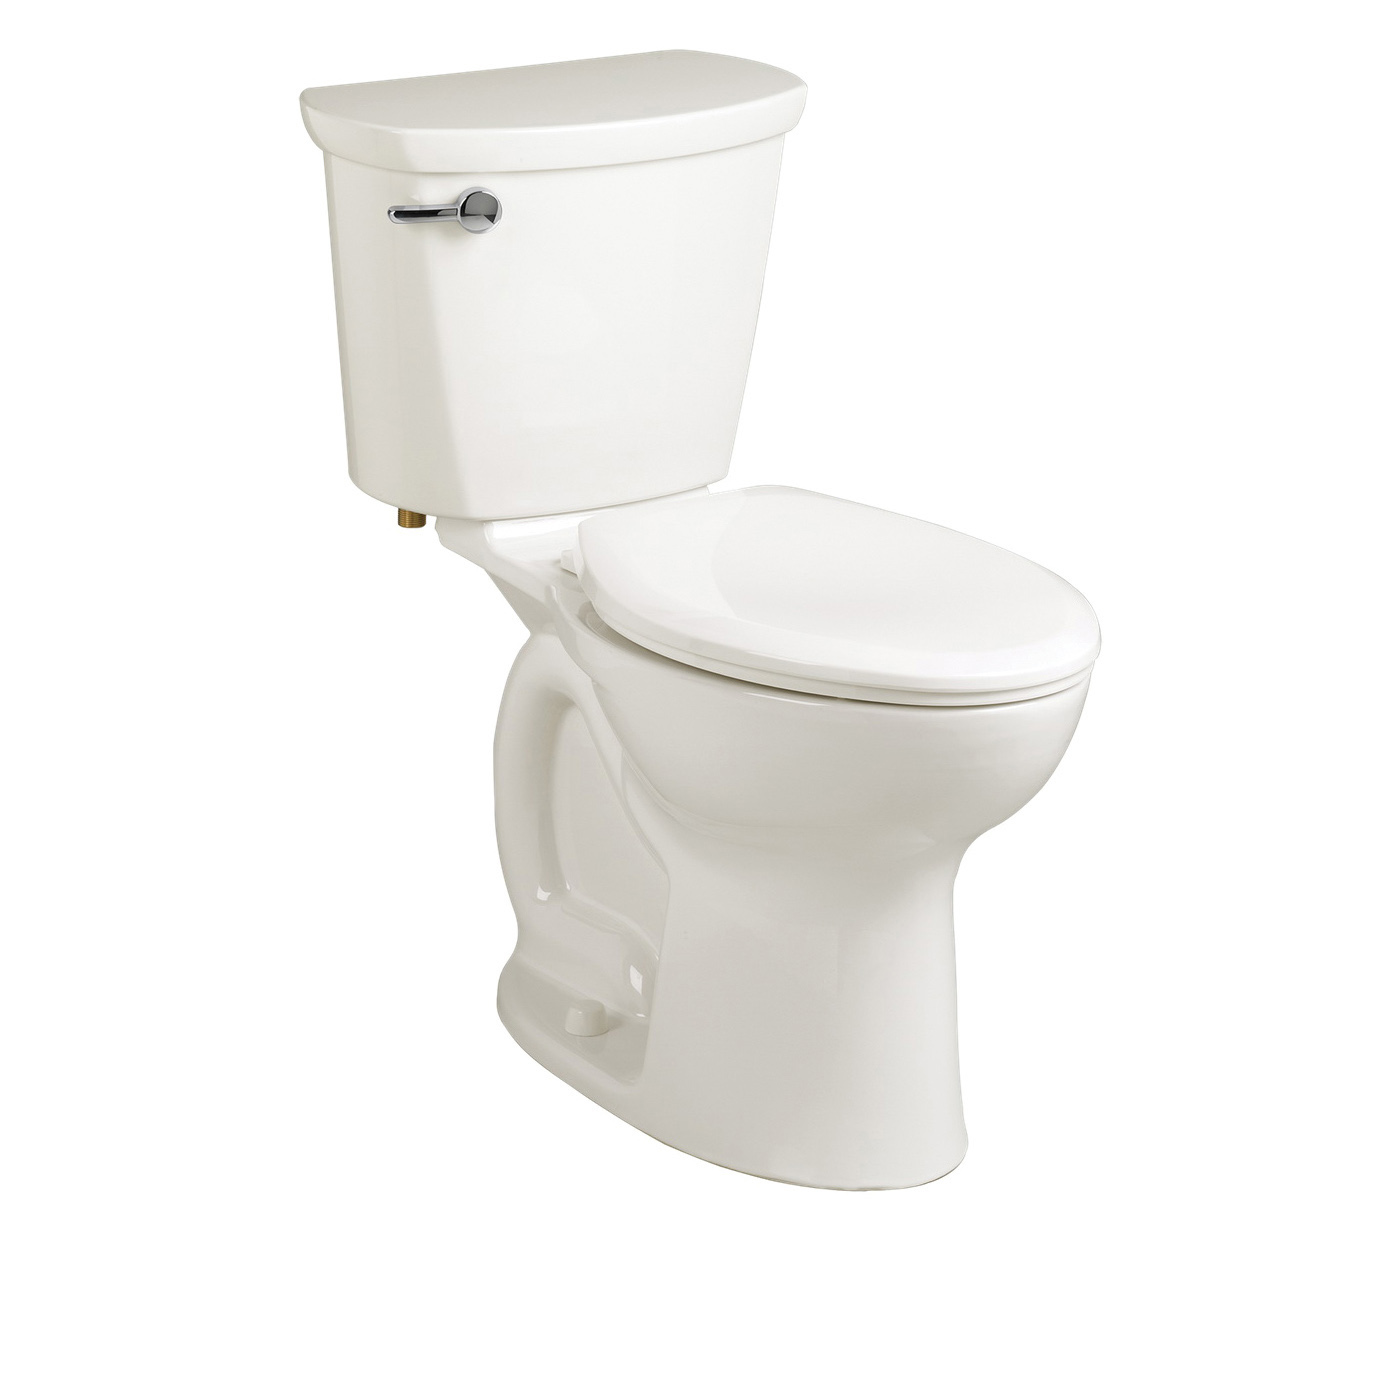 American Standard 215AB104.020 Cadet® Pro™ Right Height™ 2-Piece Toilet, Elongated Bowl, 16-1/2 in H Rim, 10 in Rough-In, 1.28 gpf Flush Rate, White, Import